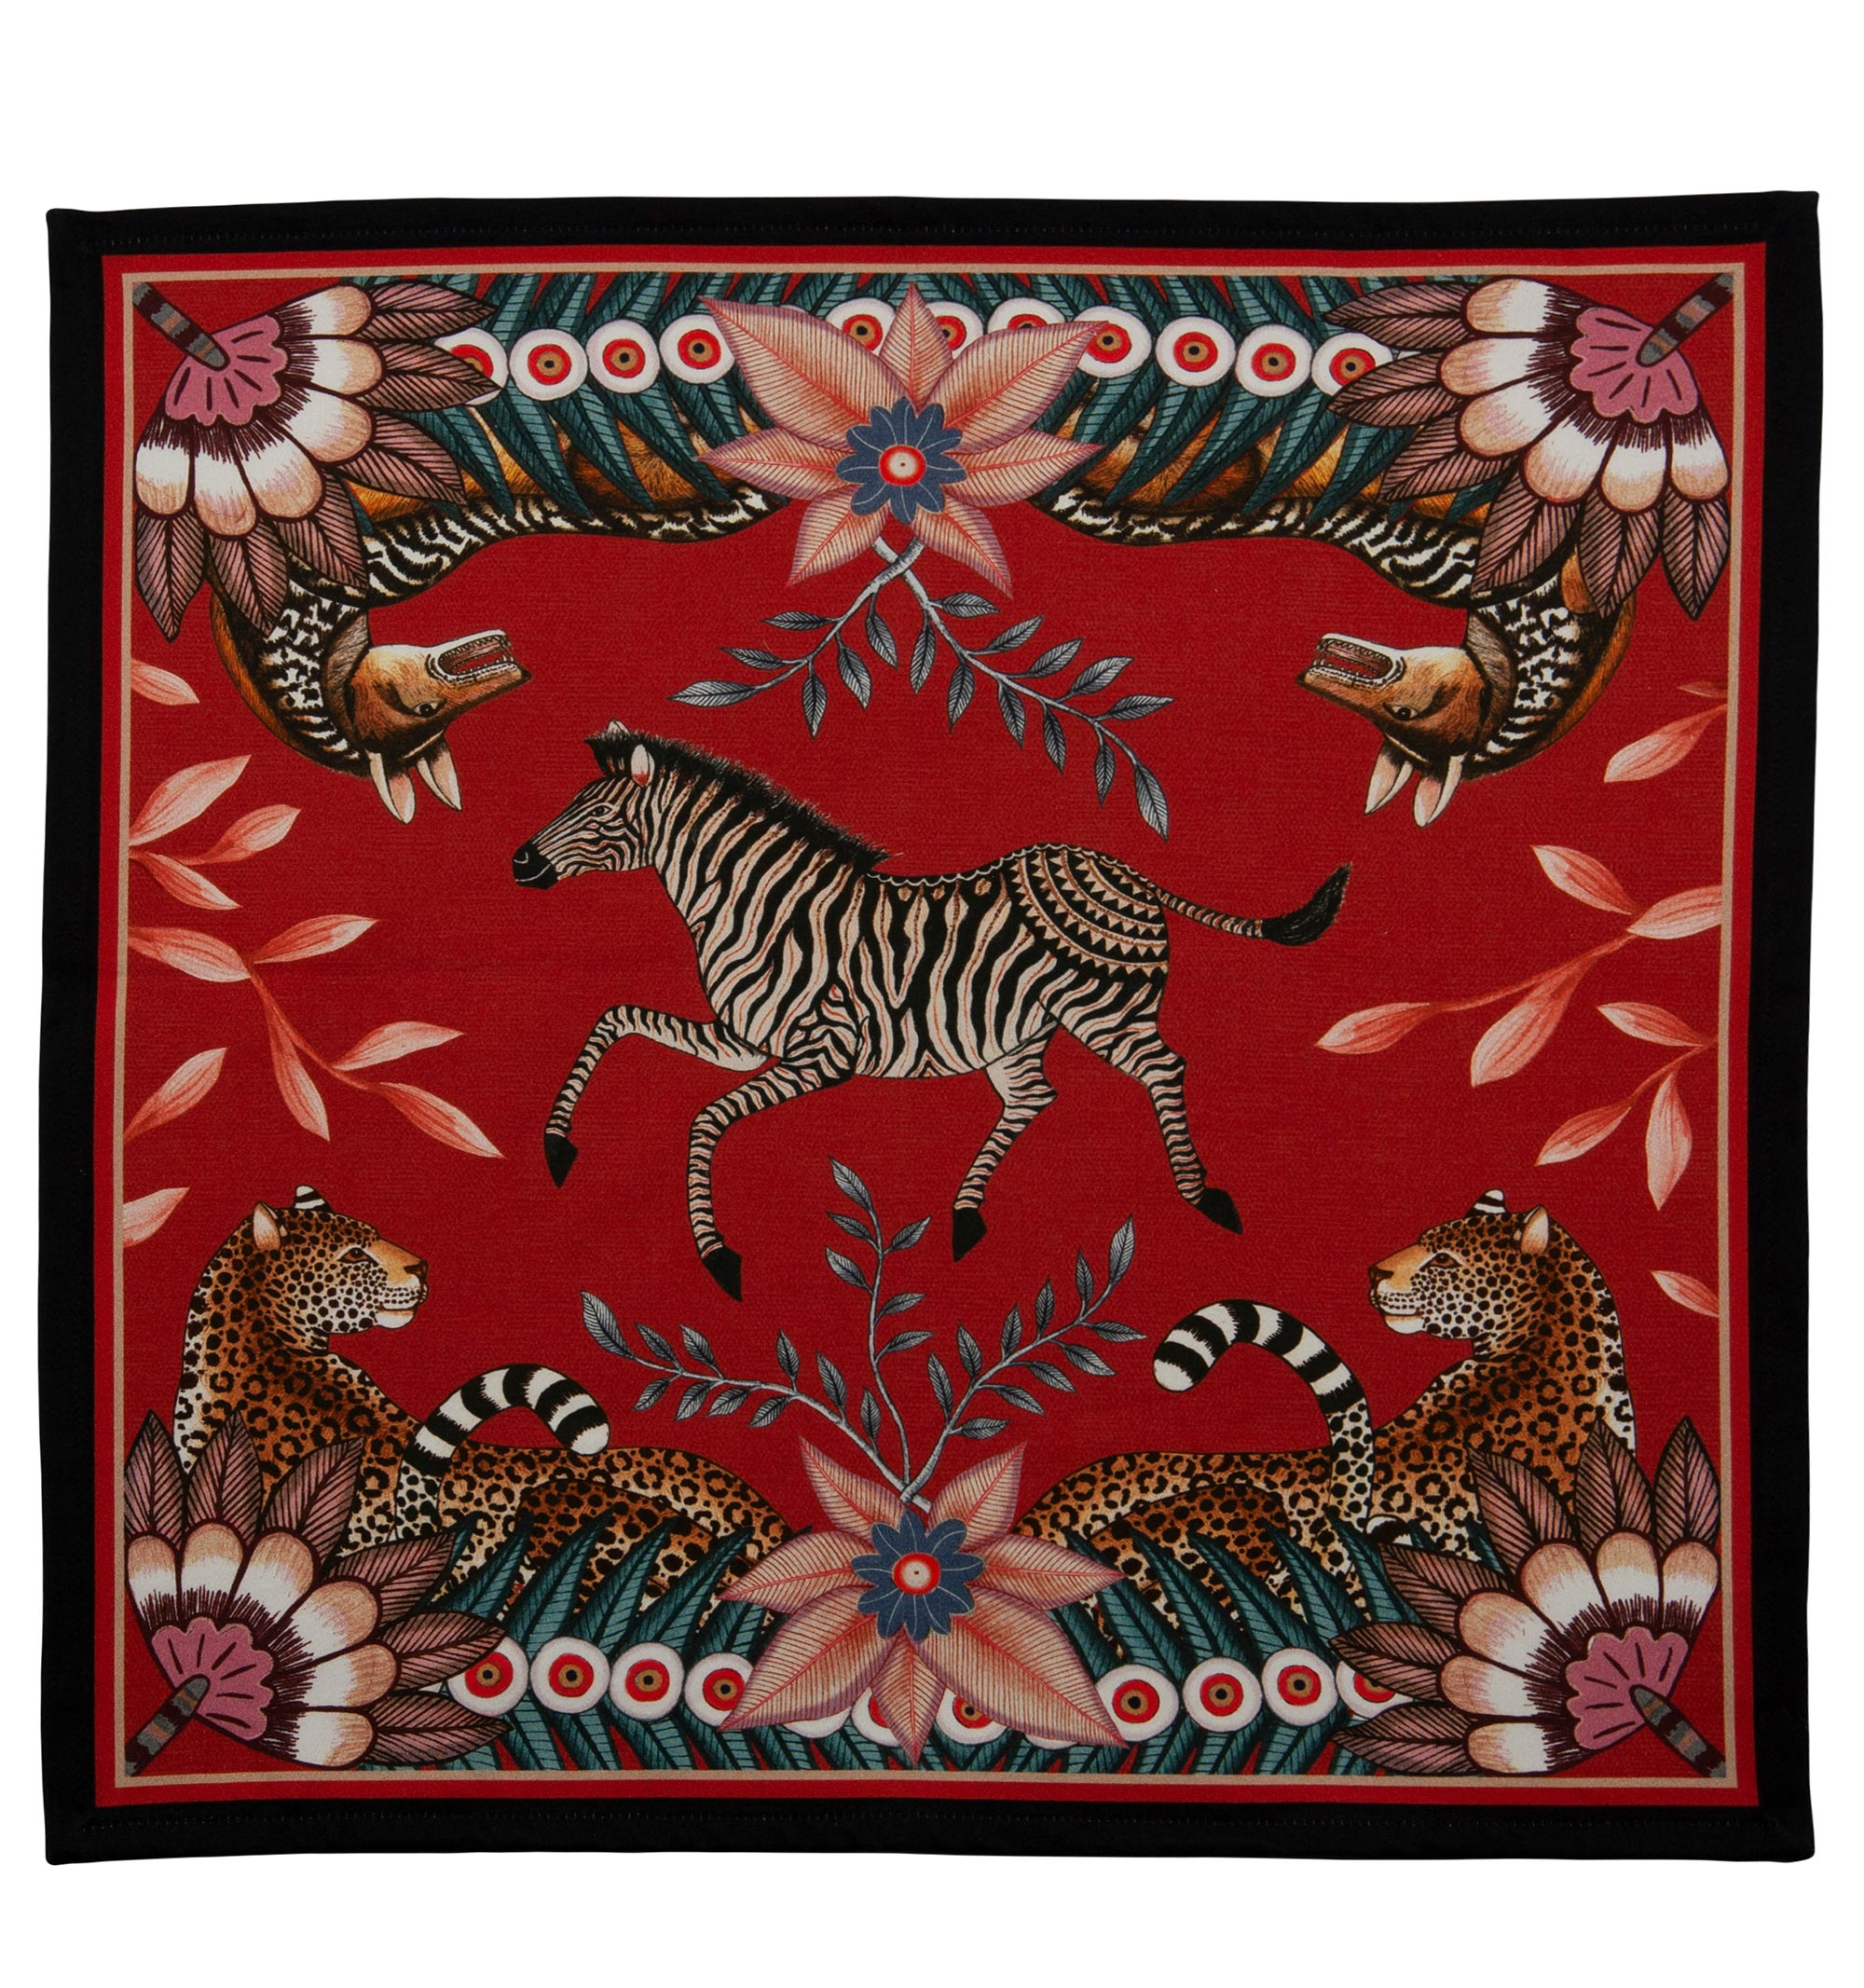 Bush Bandits Napkins (Pair) - Royal Red